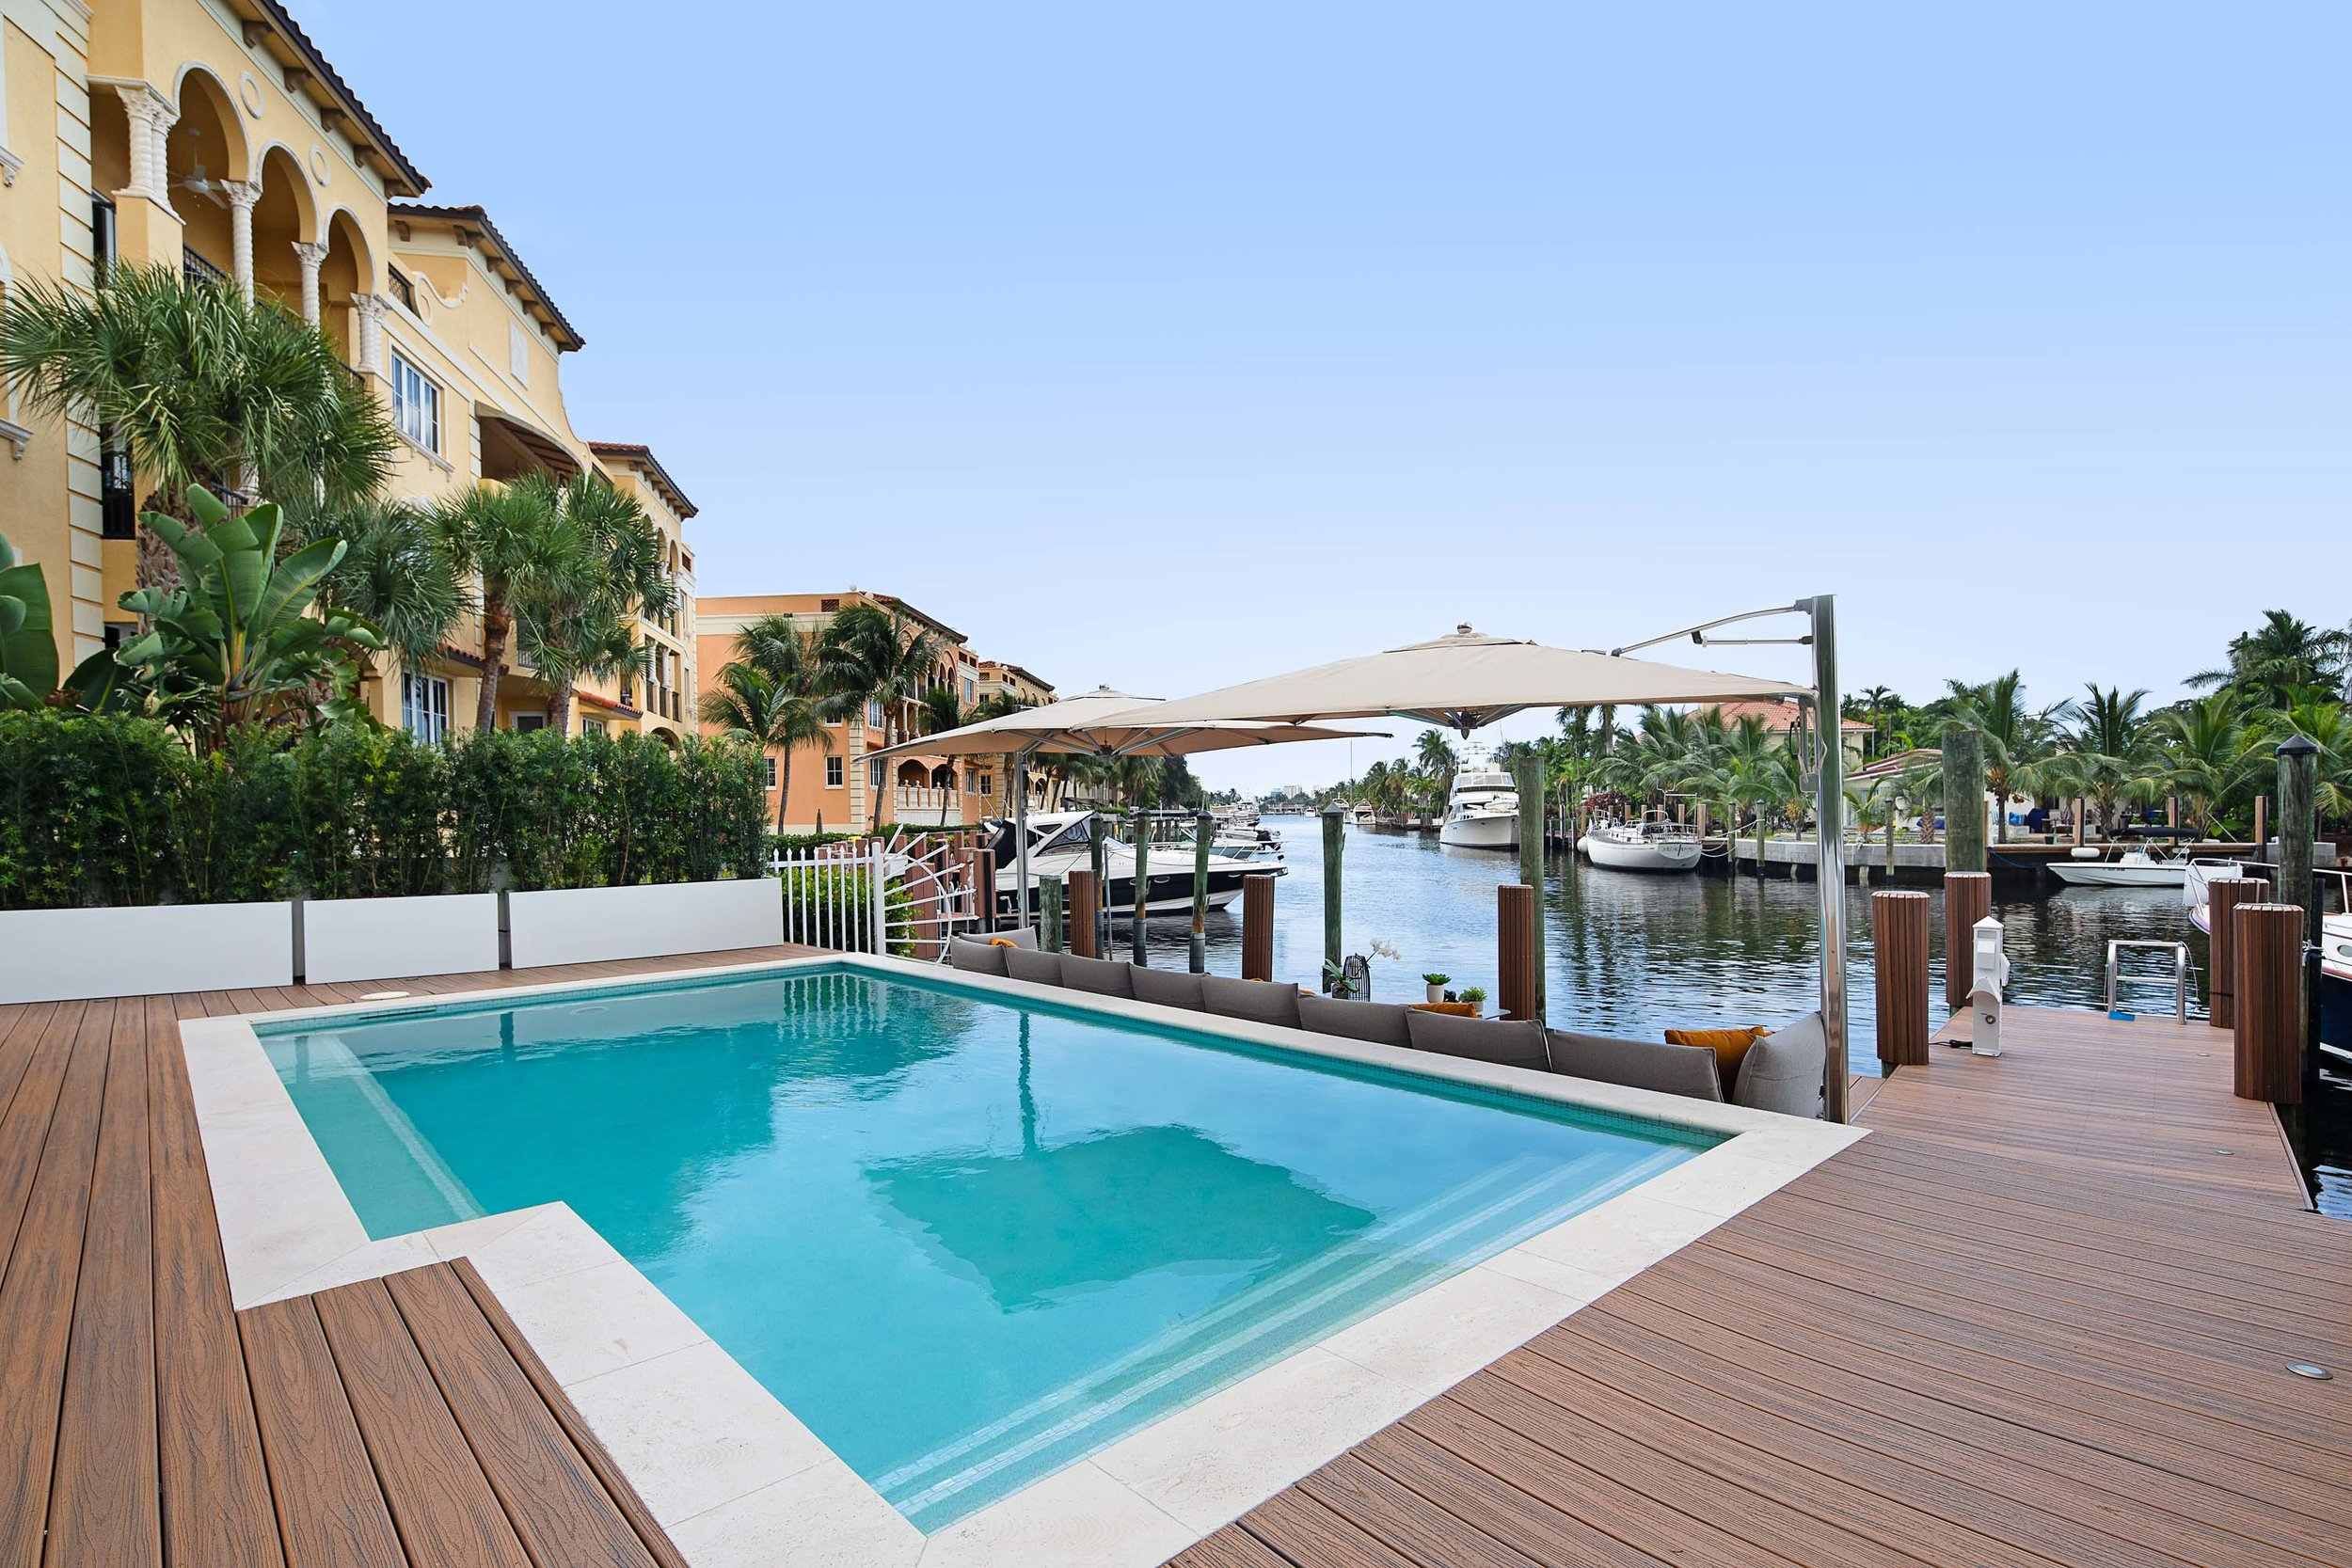 Seaside resort pool area with green plants, hardwood floor and canopy